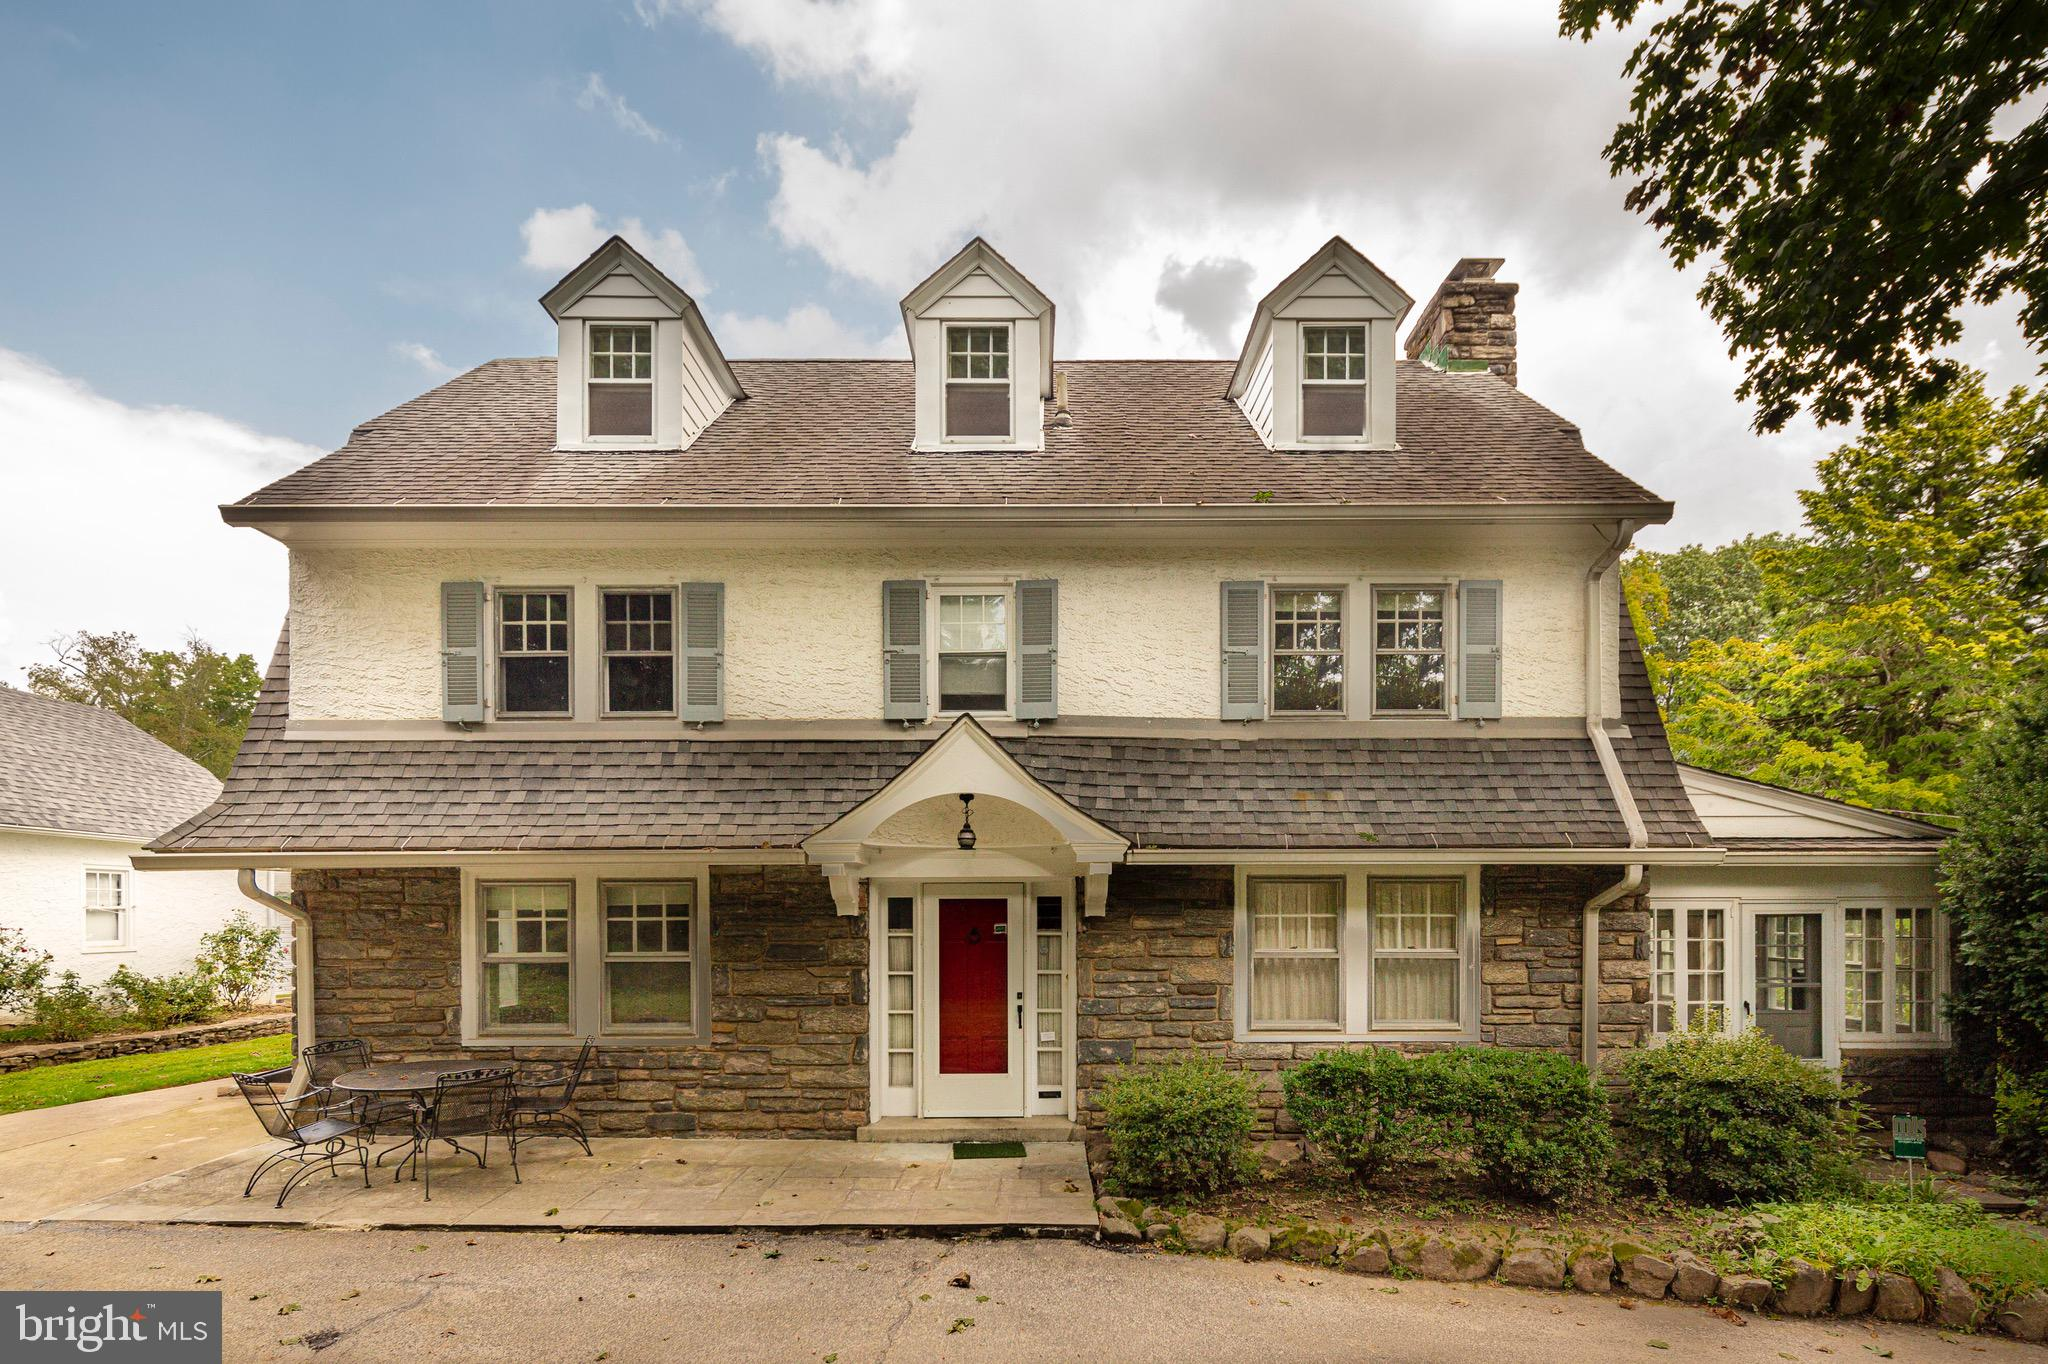 Beautifully situated stone residence on a mature planted lot with beds of roses.  5BR-3Full Bath- 2 1/2Bath Family home for 56 years- well maintained. Enter the house from the side portico door at terrace level to a center hall.  To the right of the center hall is the living room with hardwood floors, build-in book shelves and a wood burning fire place with a stone mantel.   Flanking the fireplace are sets of soundproof double doors.  Doors open to a beautiful bright 3 sided windowed sunroom  or a Private Office with Separate Entrance from the lower terrace.(was used for many years as a psychiatrist office) The center hall leads to an elegant dining room on the left with built-in corner cabinets of glass with wood detailing.  Enter the fully equipped kitchen from the dining room or hall.  The  breakfast area is sunlit. The rear door leads to mud room and pantry then to the outside terrace.   Second floor primary suite with hardwood floors, full wall of floor to ceiling closets and separate closets on either side of the tiled bathroom.  Two additional bedrooms with hardwood floors, lots of light and shared hall bath.   Third floor with 2 bedrooms with dormers and demi-fan windows with a walk-in cedar closet plus hall shared bath.   Basement has fully finished entertainment space with  wood paneling and linoleum floor and stairs to outside.  Built in bar in the entertainment space with full laundry, 2nd refrigerator, utility sink and workshop area with an additional powder room and large storage closet.  BRAND NEW ELECTRICAL SYSTEM and electrical panel just installed with three pronged sockets throughout  Outside has terraced area and front lawn area with flower beds and a  rear flat lawn perfect for croquet plus a separate 2 car garage with drop-down stairs to attic storage space.   Workshop area has full electric. Originally built in 1936 with all of the solid bones  and detailing